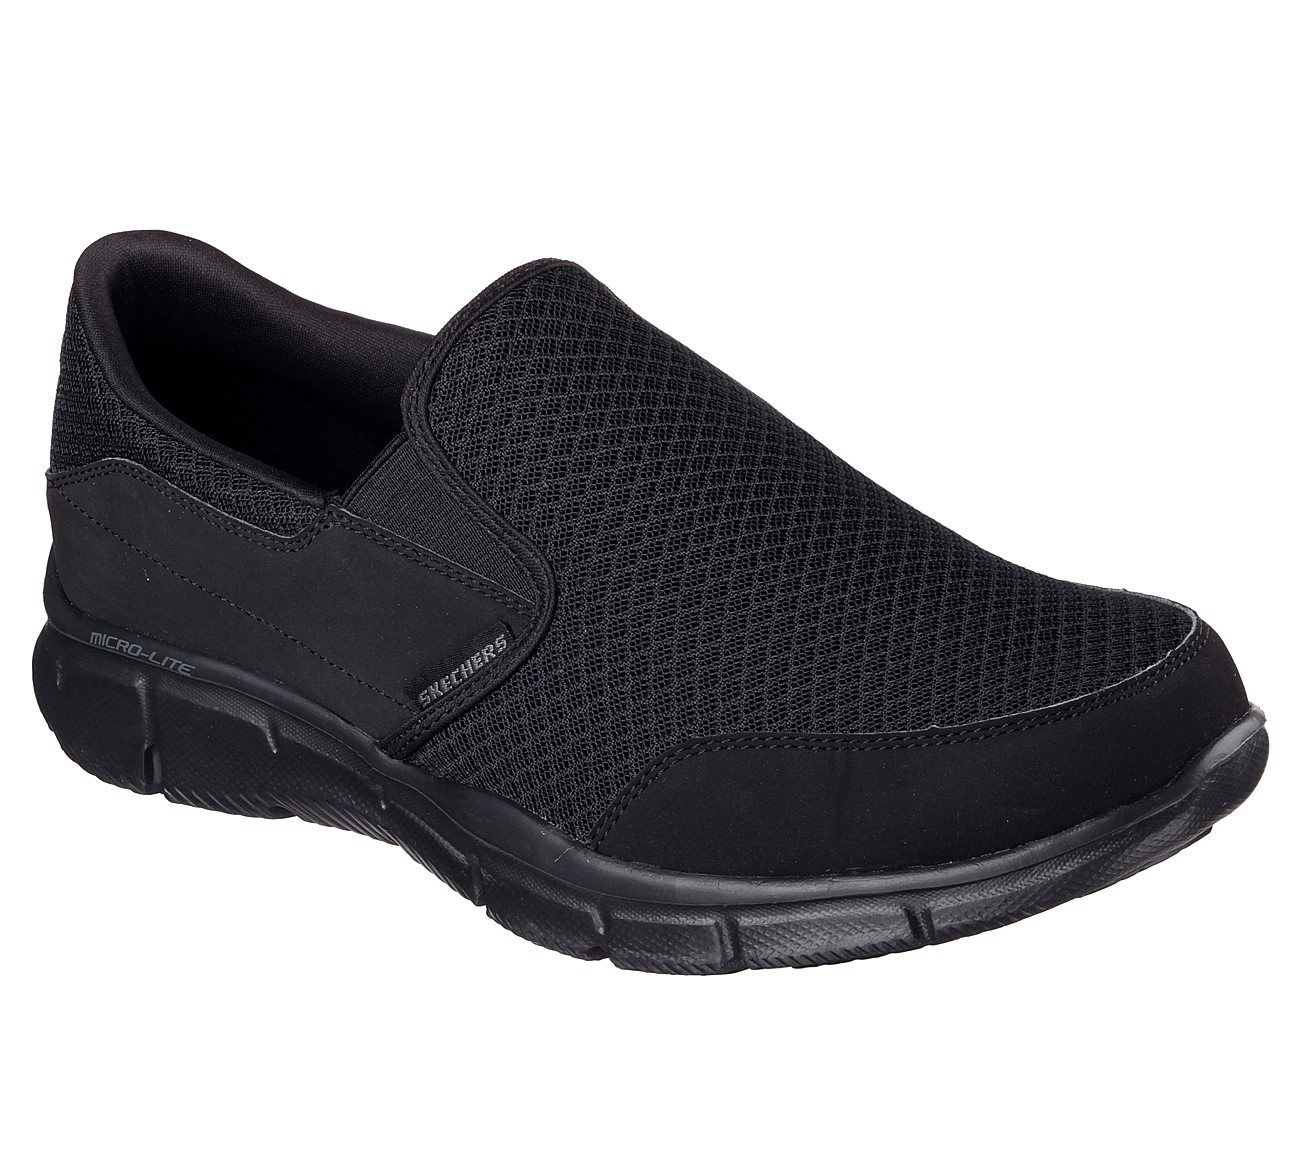 skechers shoes for boys. hover to zoom skechers shoes for boys s